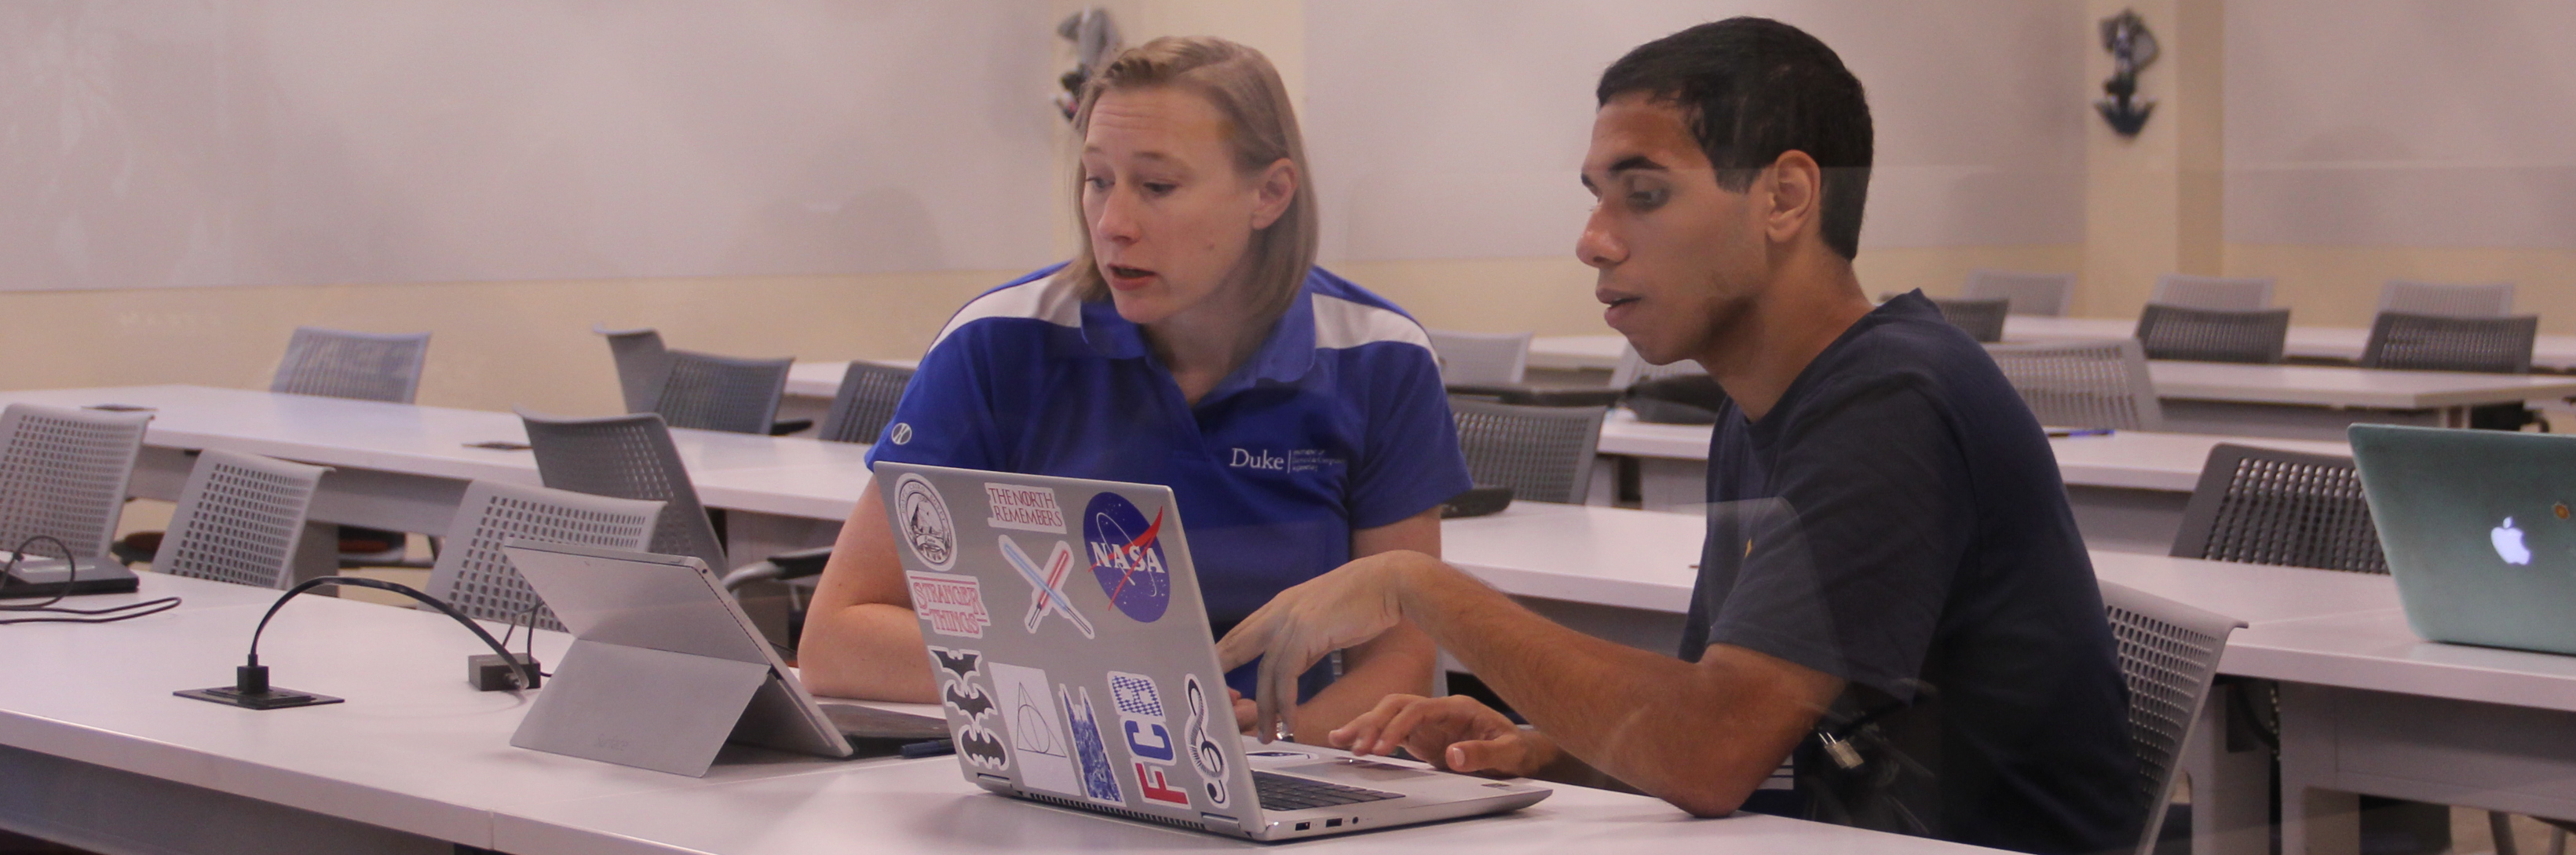 An advising session between faculty advisor and Duke engineering student.